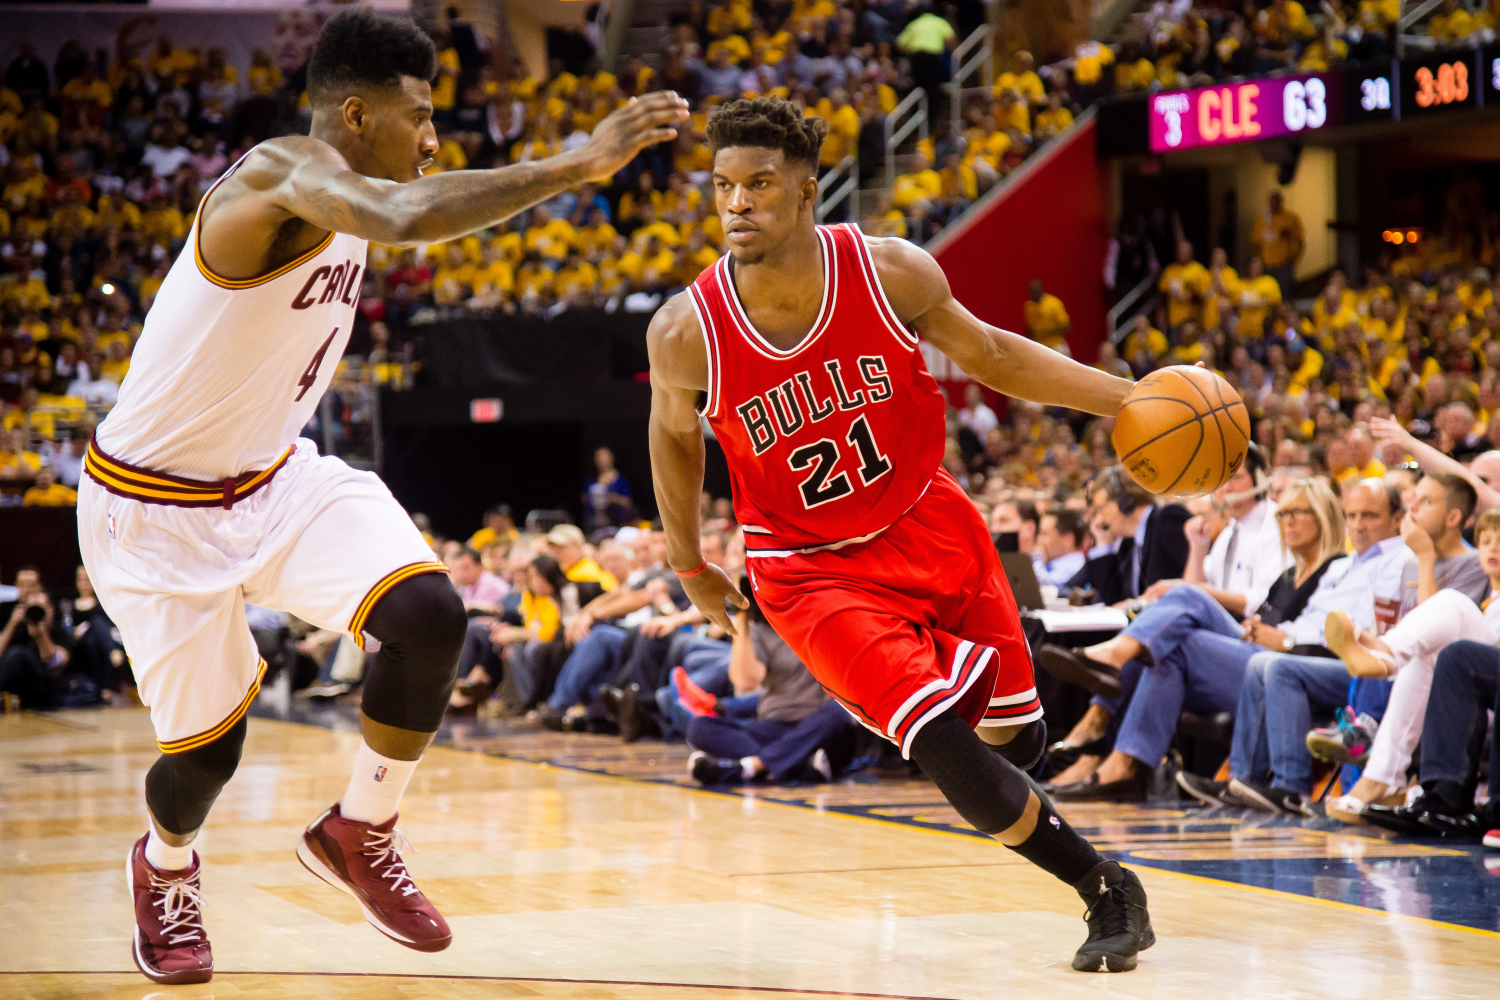 Free Chi Chicago Bulls Jimmy Butler Perfect Playing Free Hd Background Laptop Desktop Images